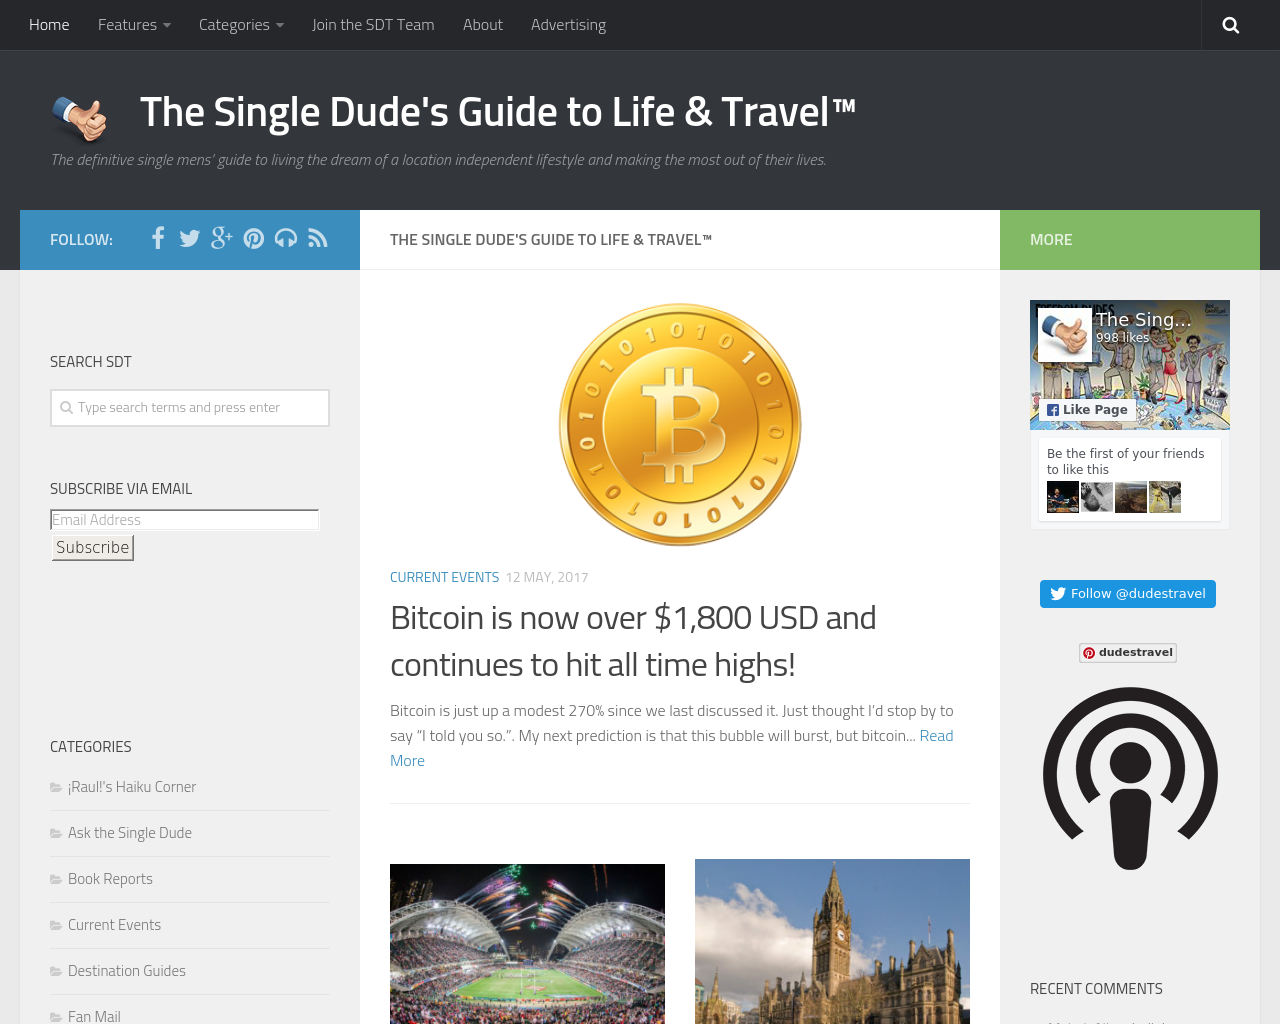 The-Single-Dude`s-Guide-to-Life-&-Travel-Advertising-Reviews-Pricing